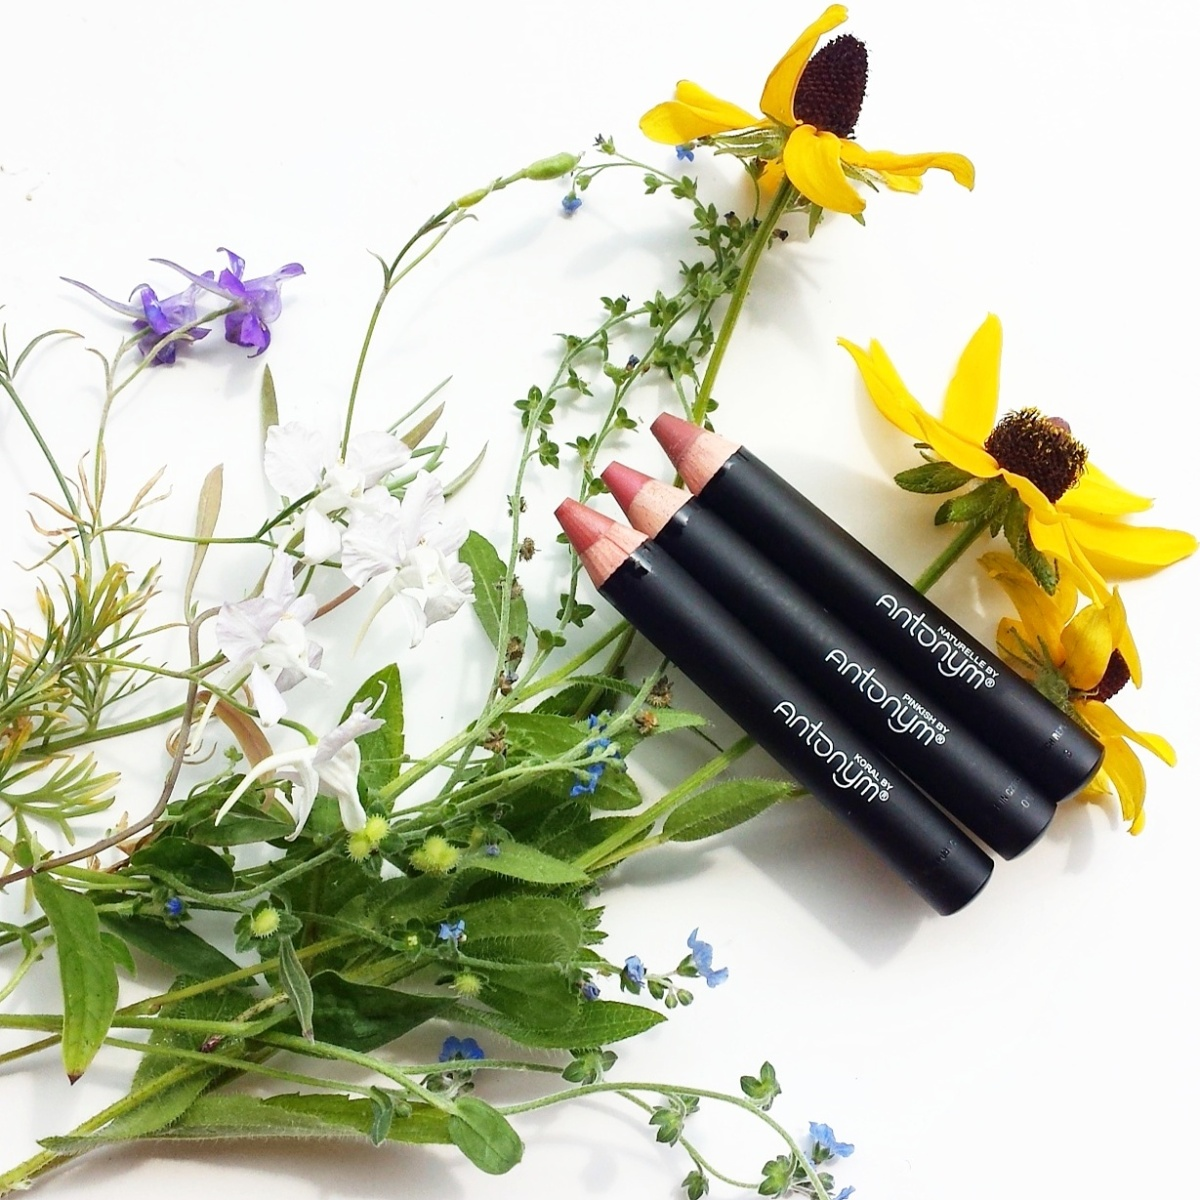 Antonym Certified Natural Lipstick Pencils HAUL